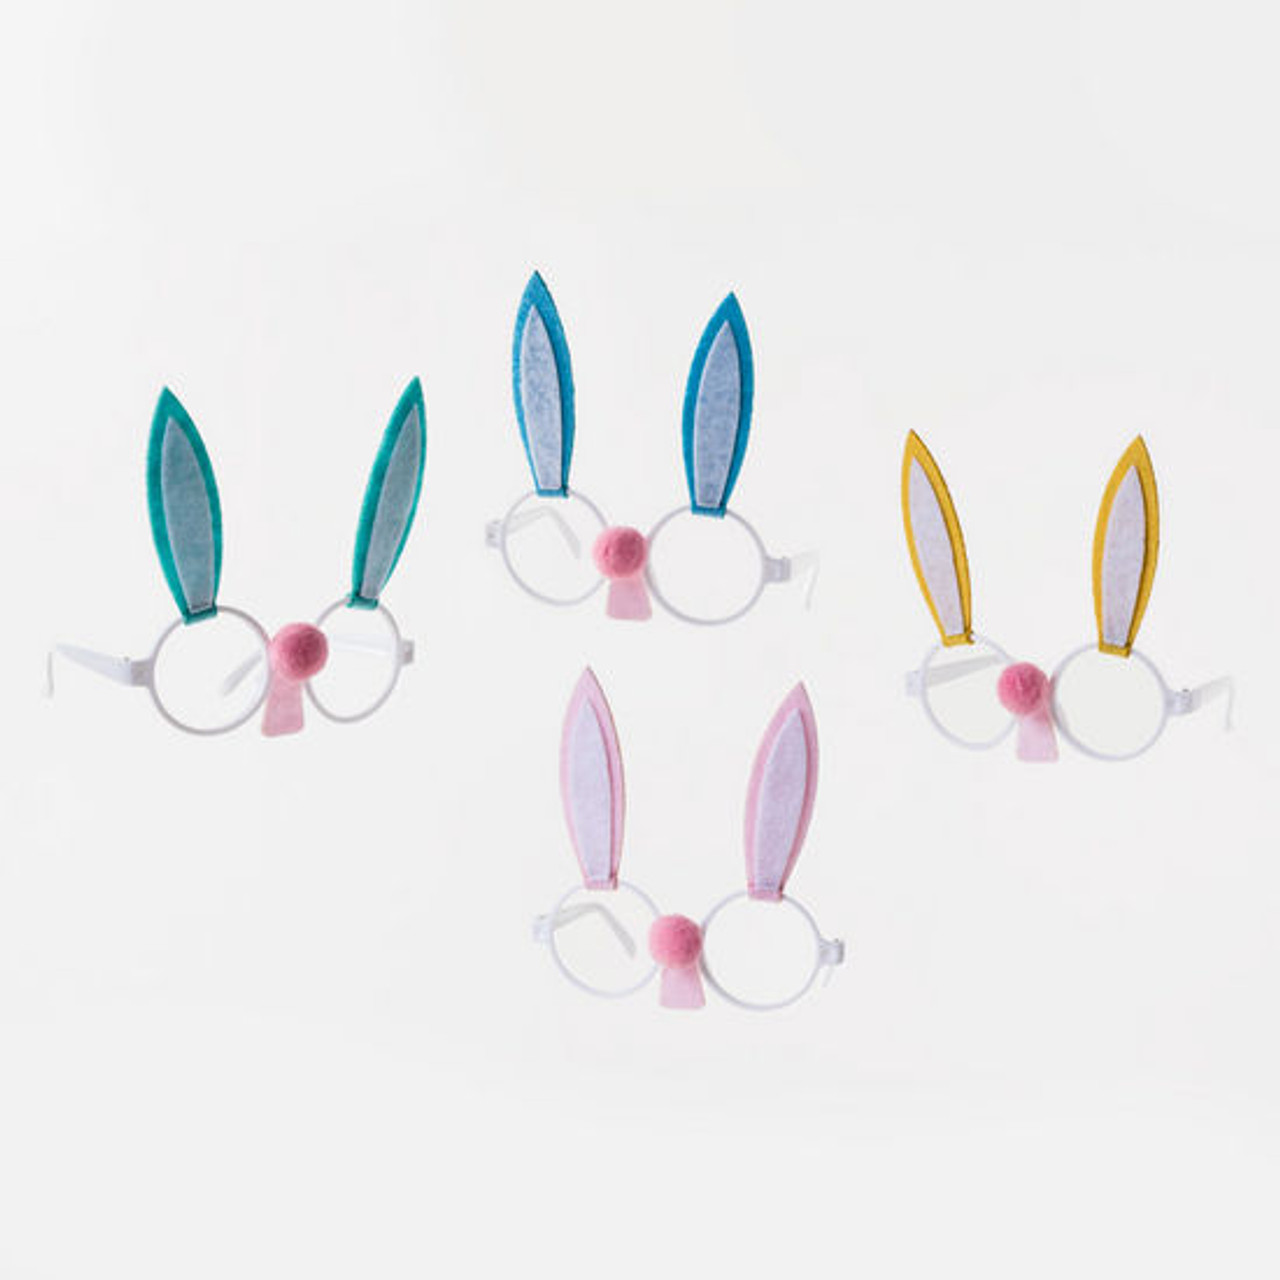 Celebrate Easter with these adorable bunny glasses with felt ears for all ages.